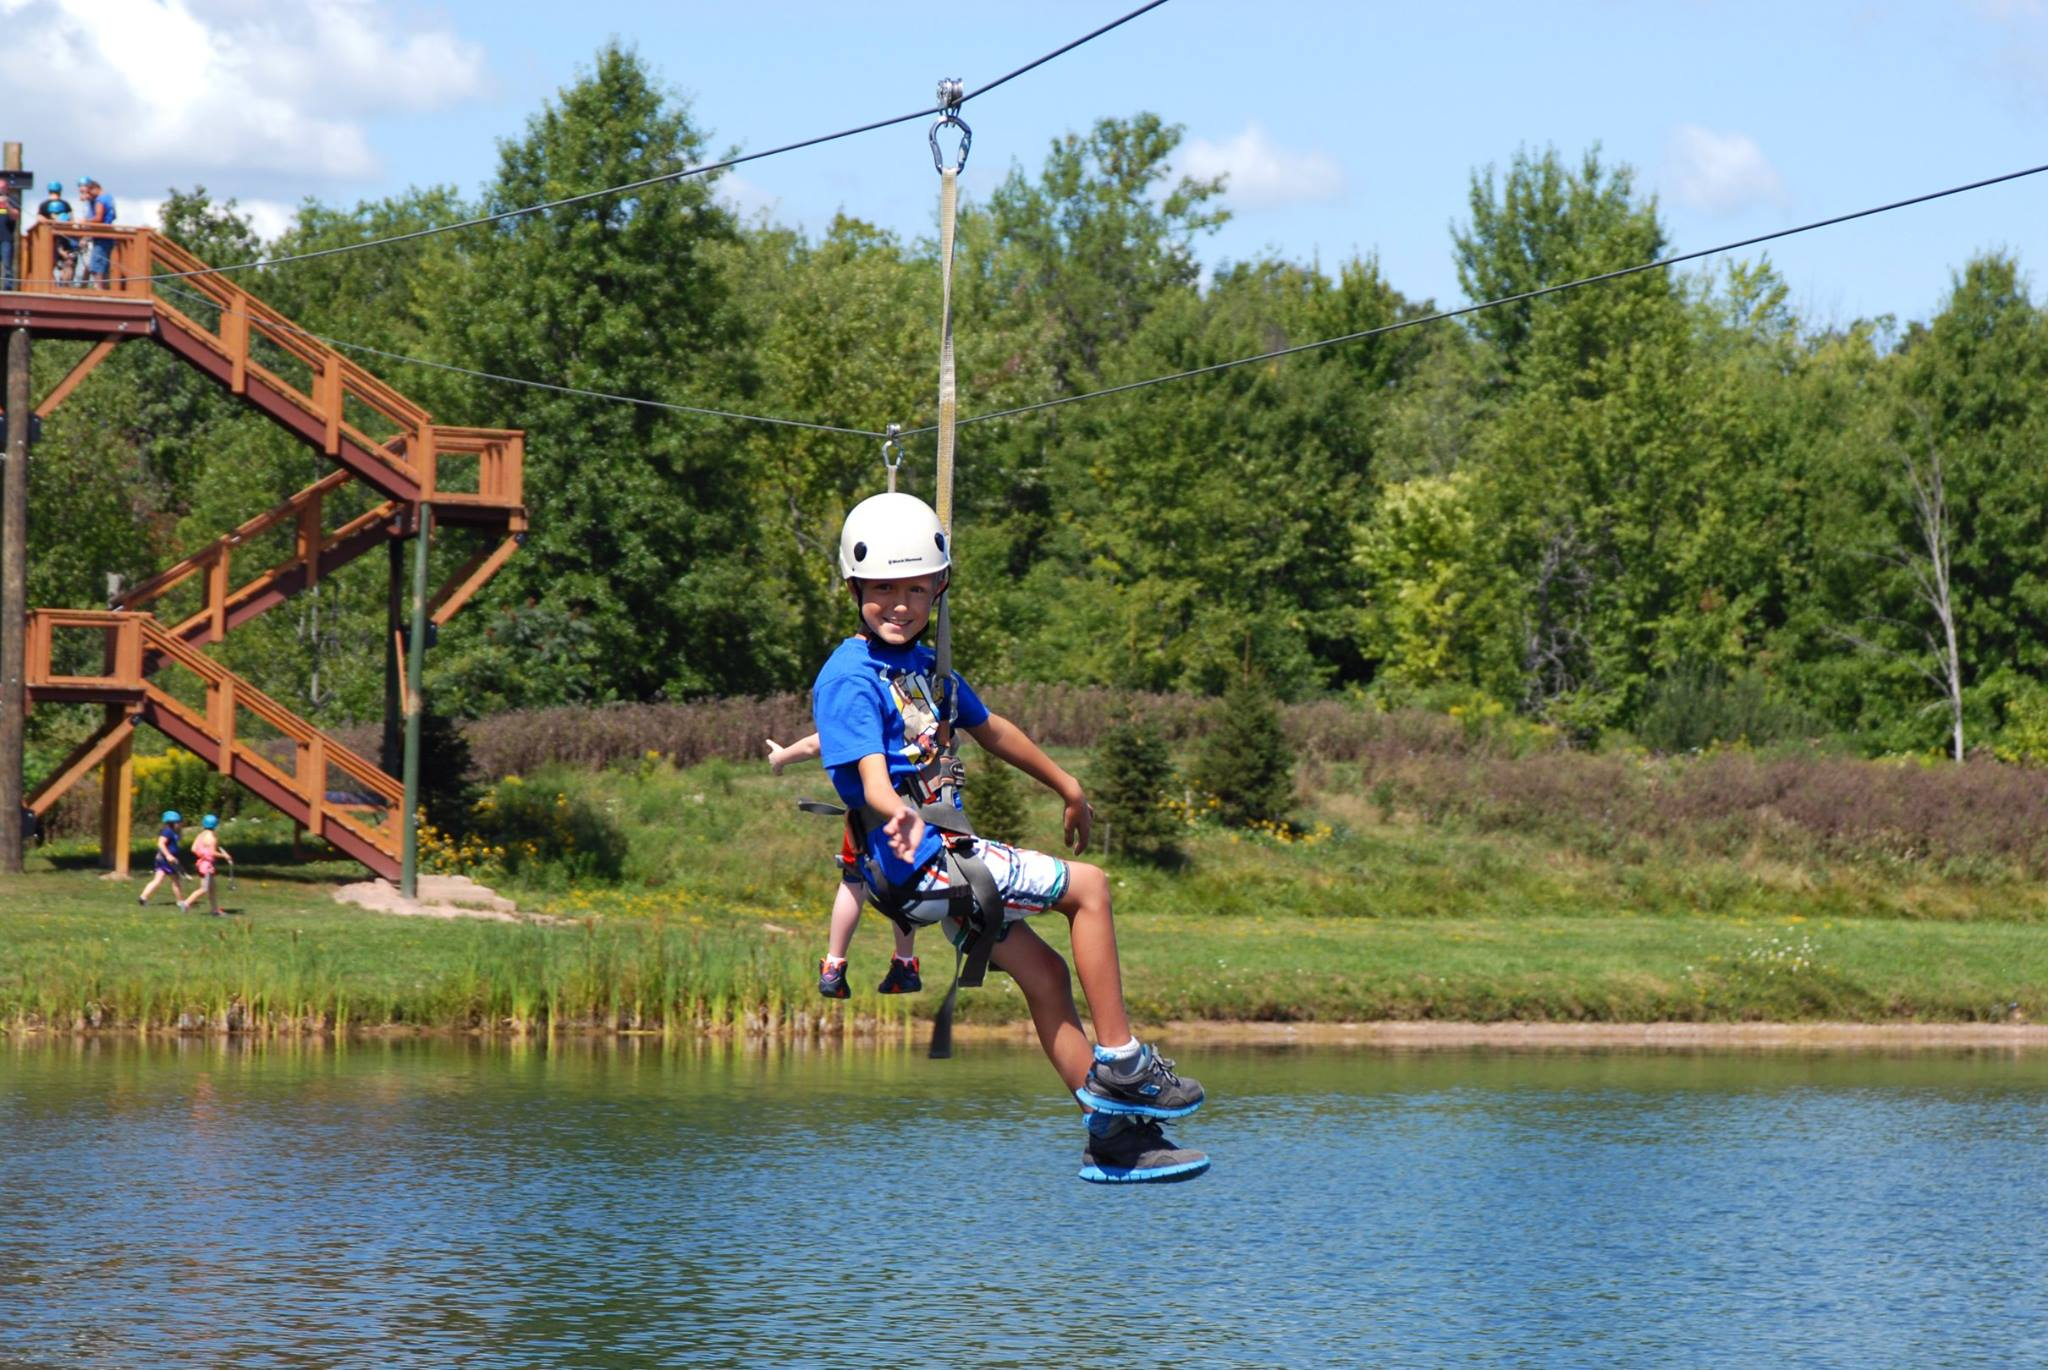 little boy on a zipline